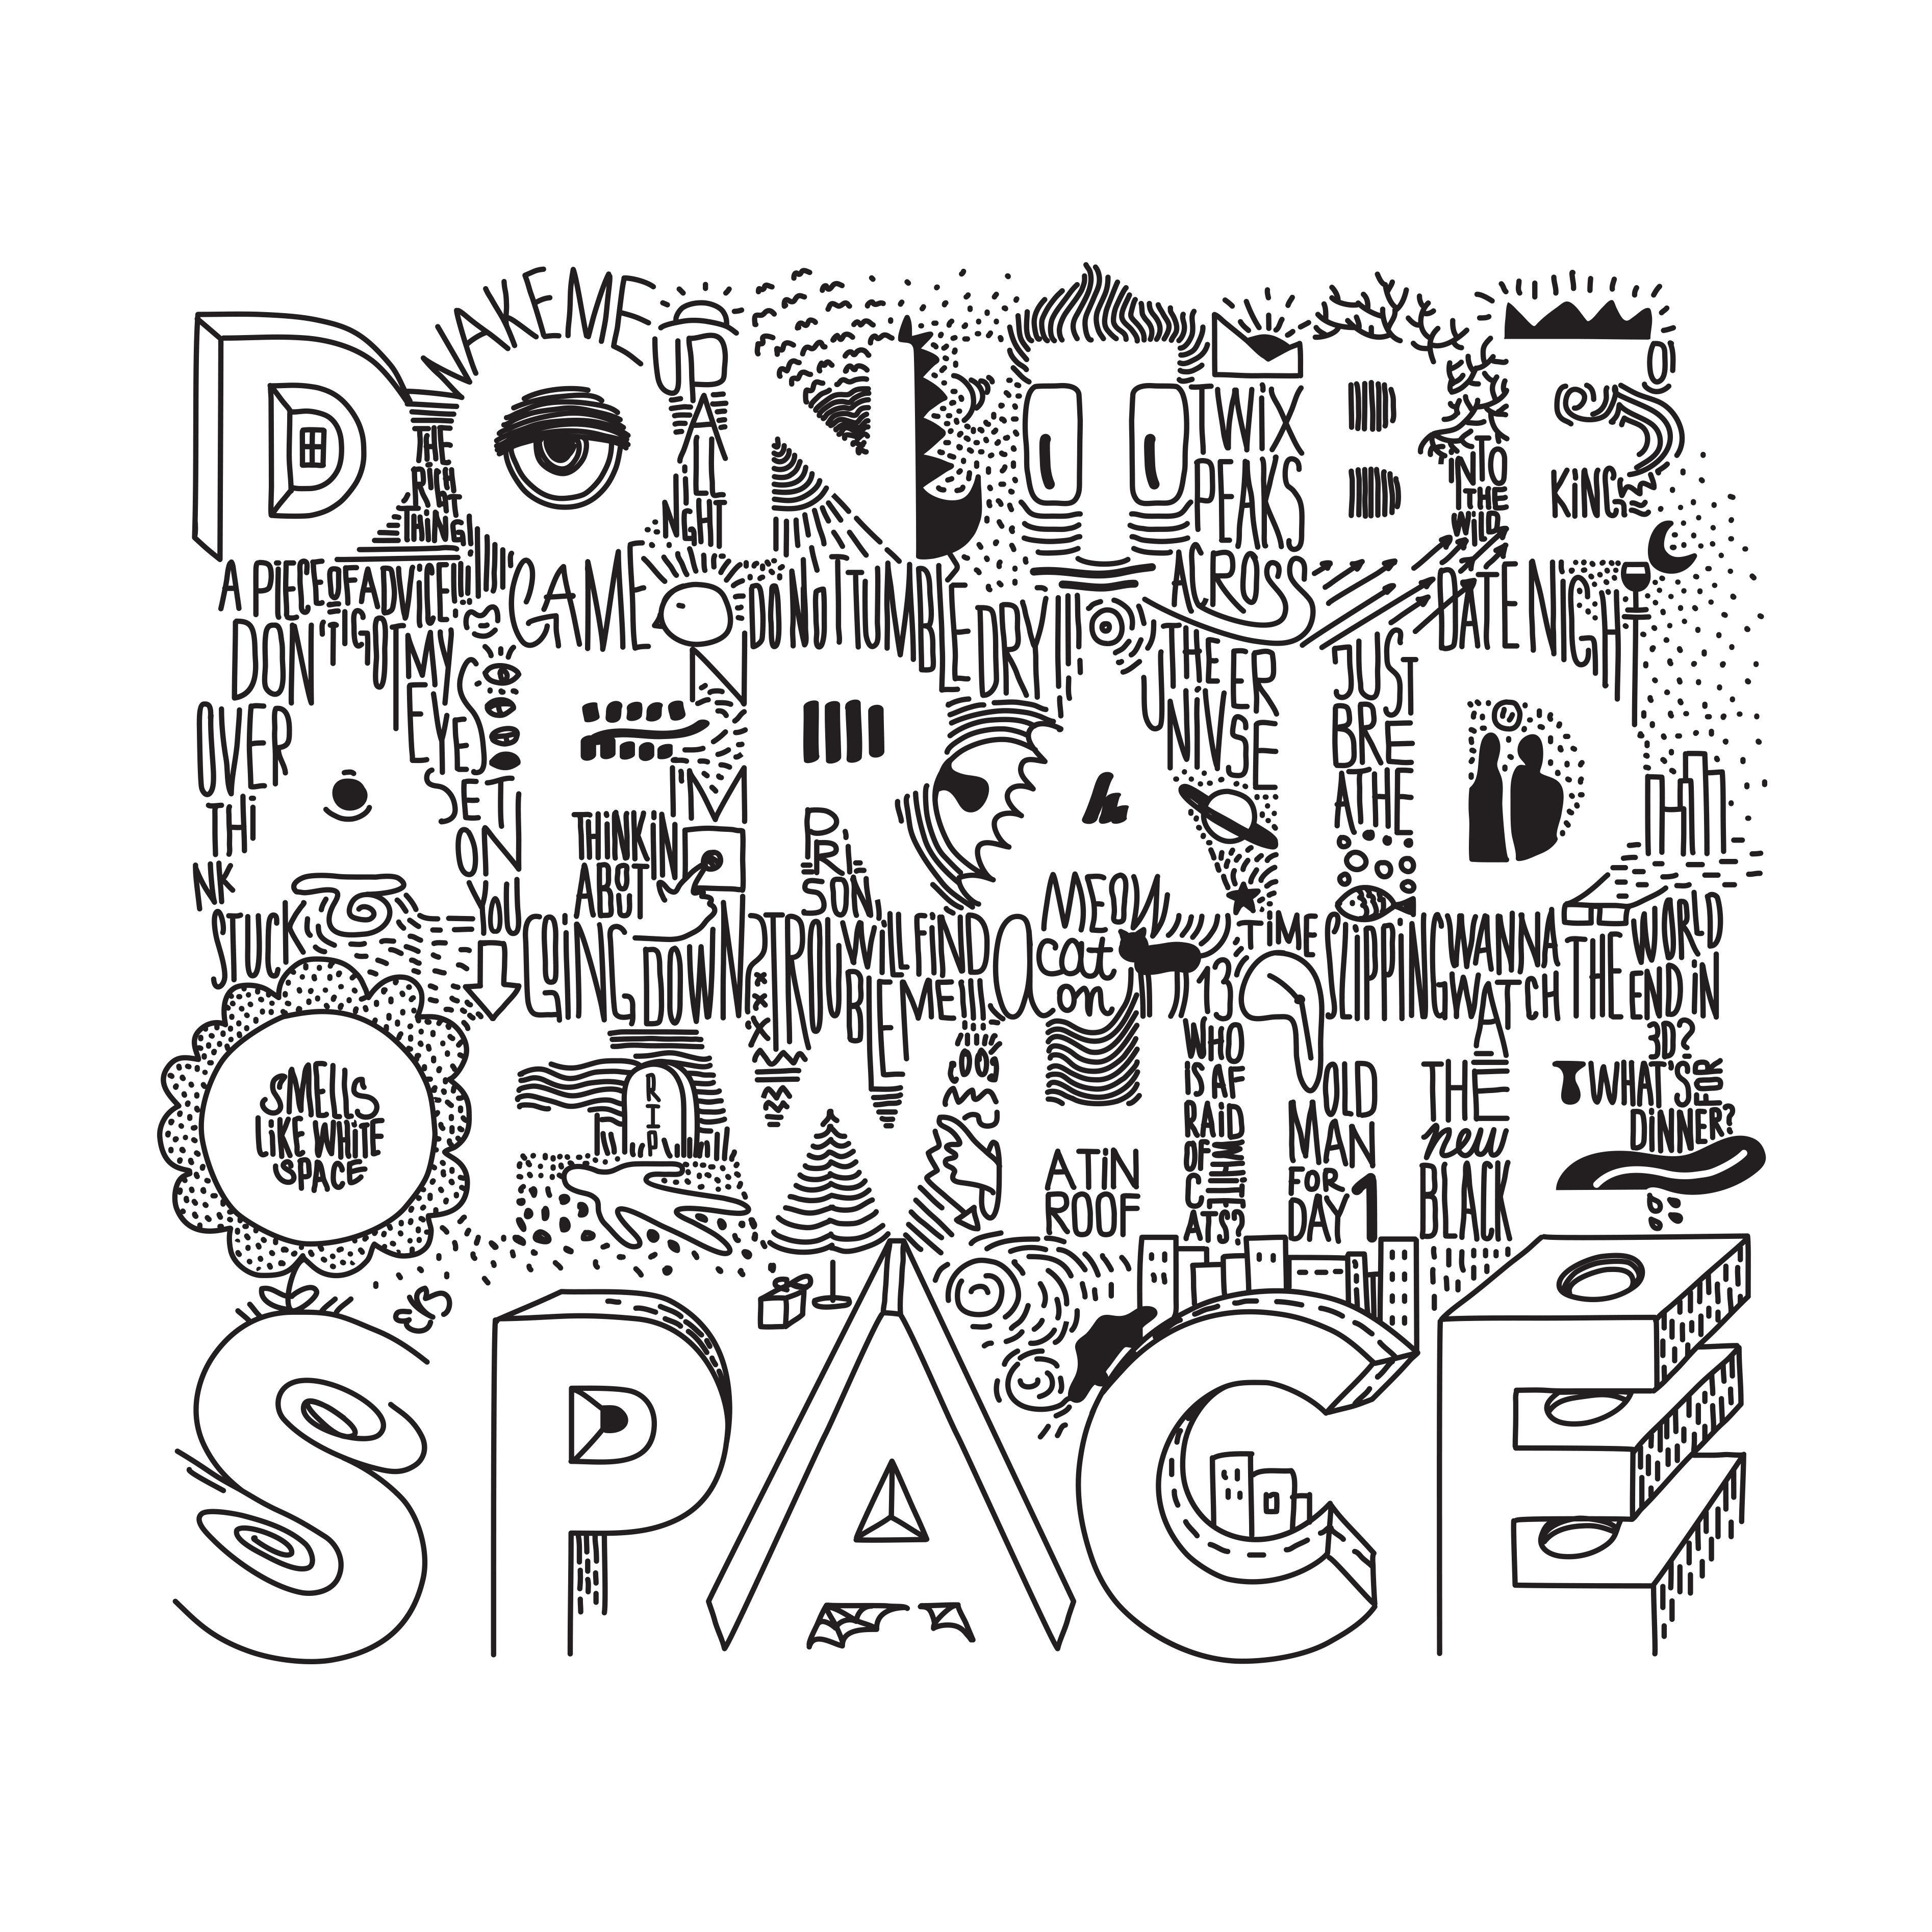 Making it as an artist - don't be afraid of white space design